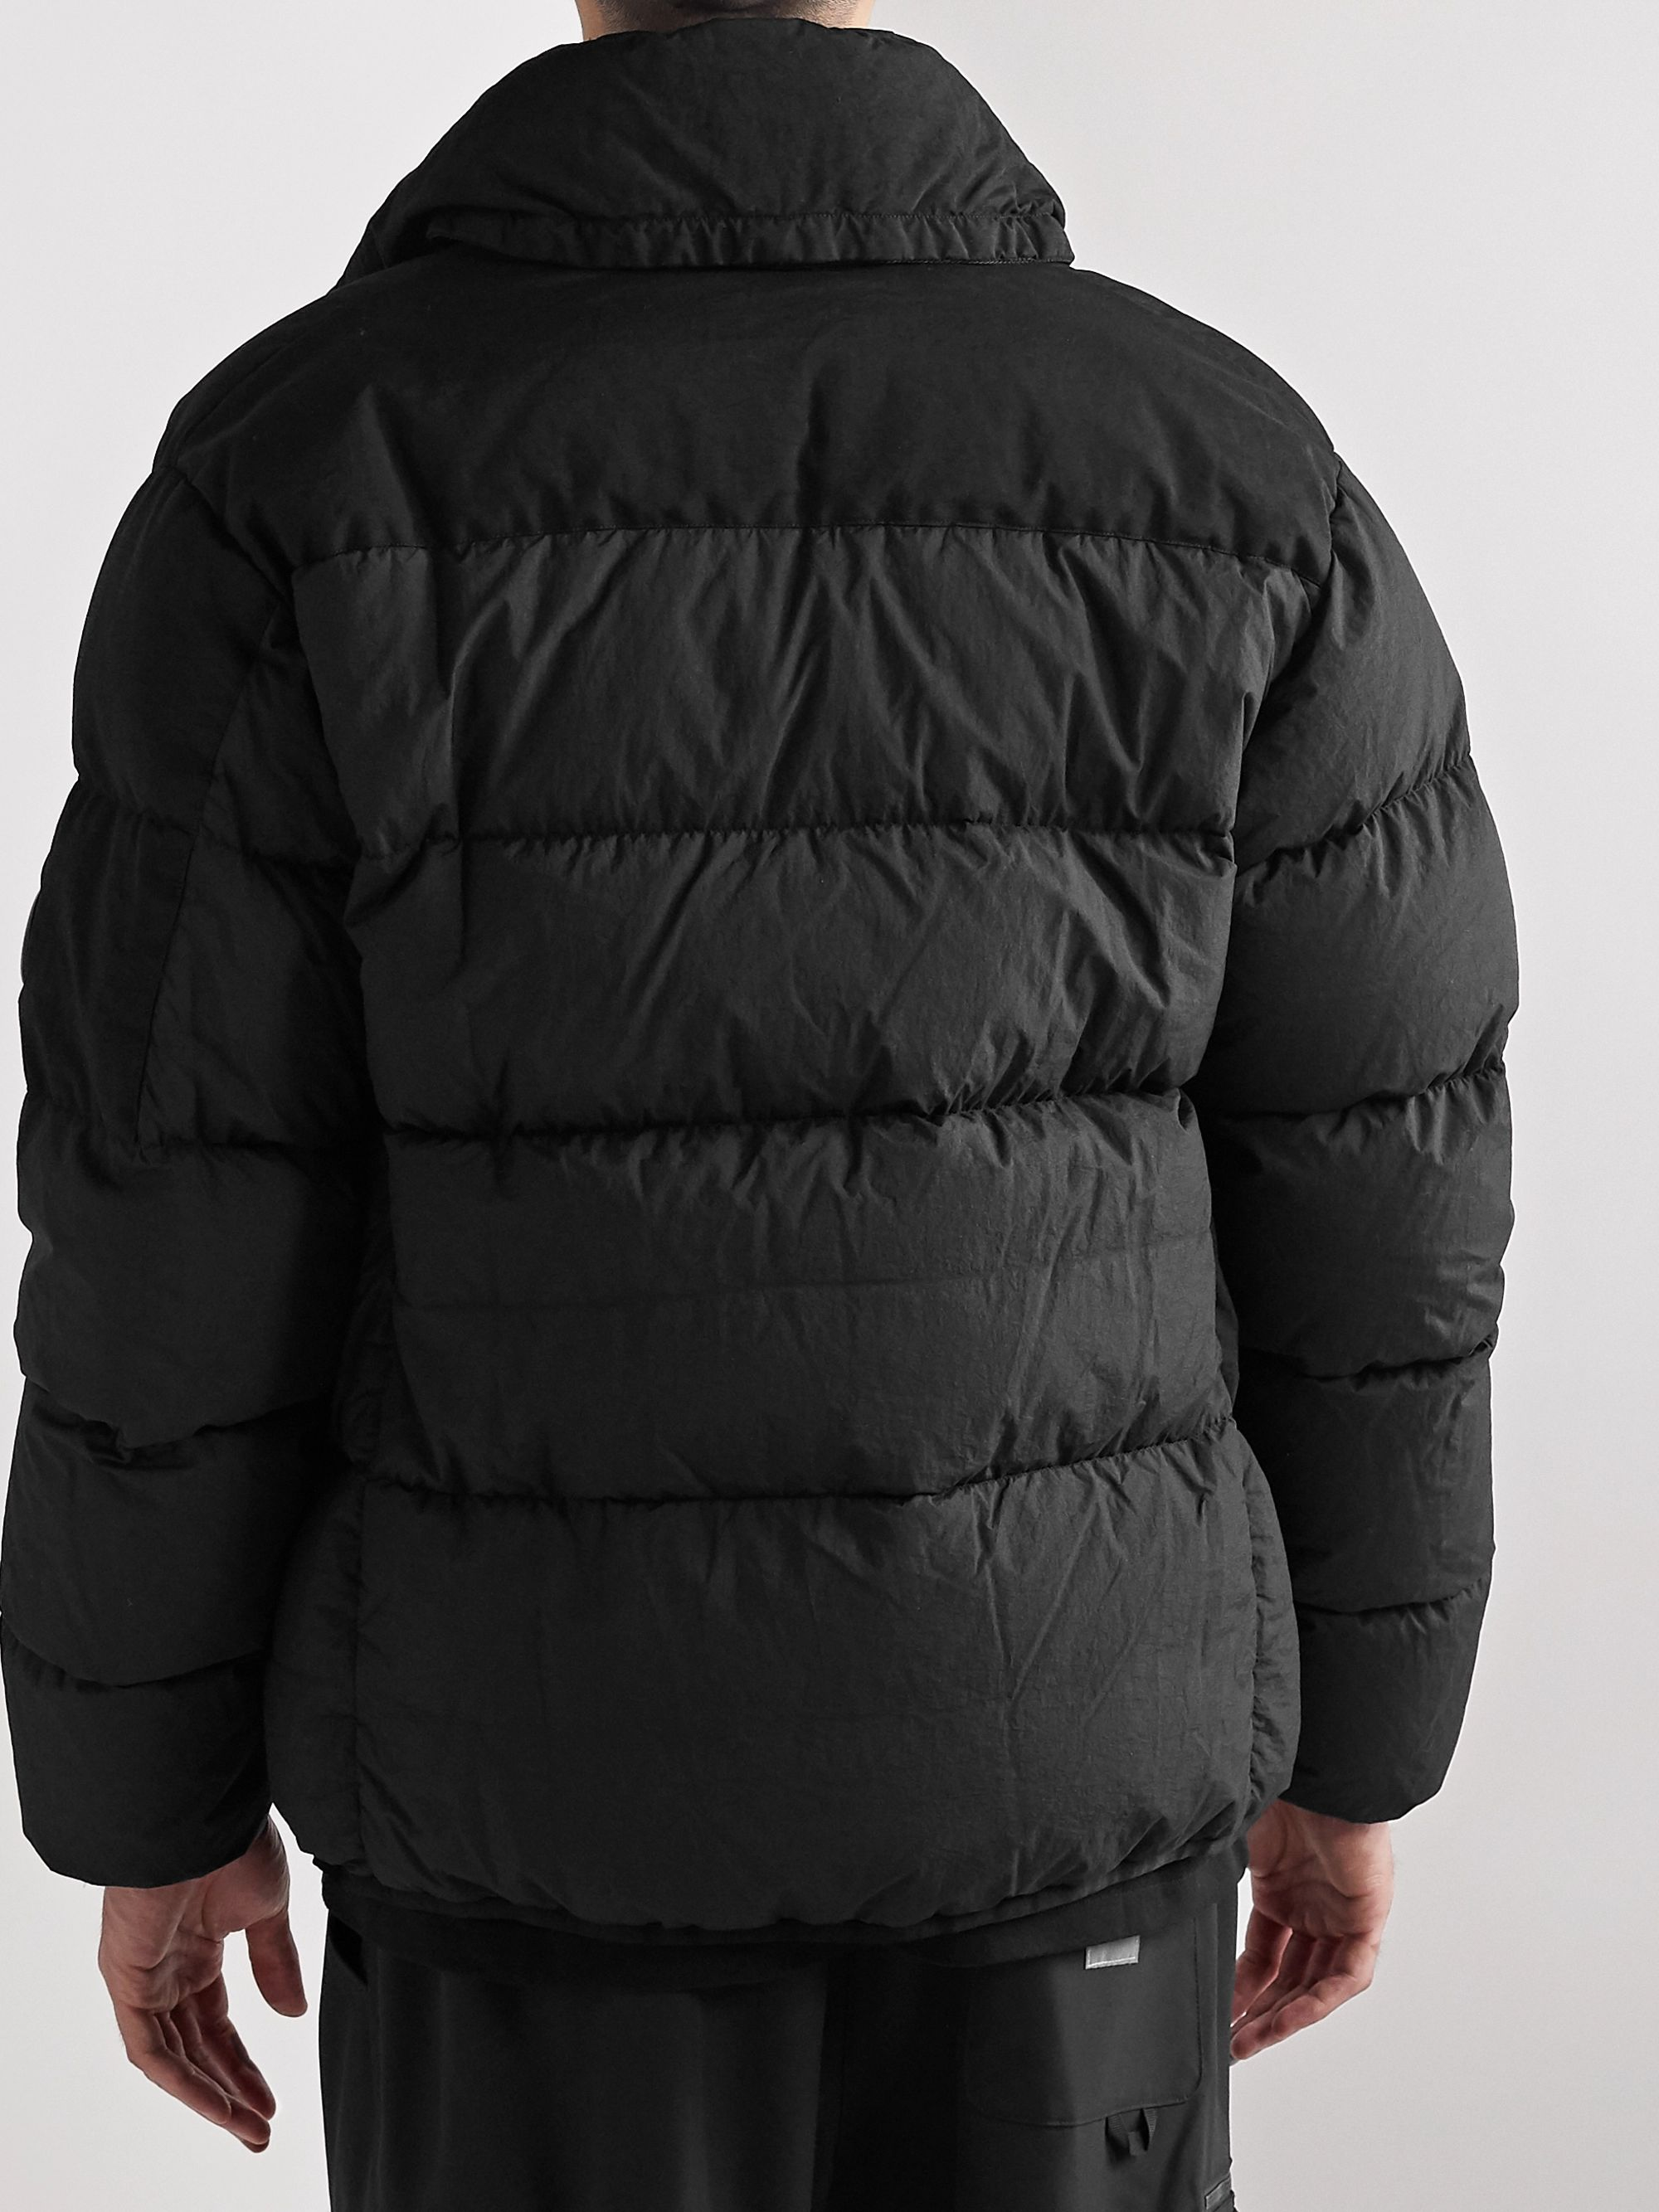 C.P. Company Appliquéd Garment-Dyed Padded Quilted Nylon Jacket